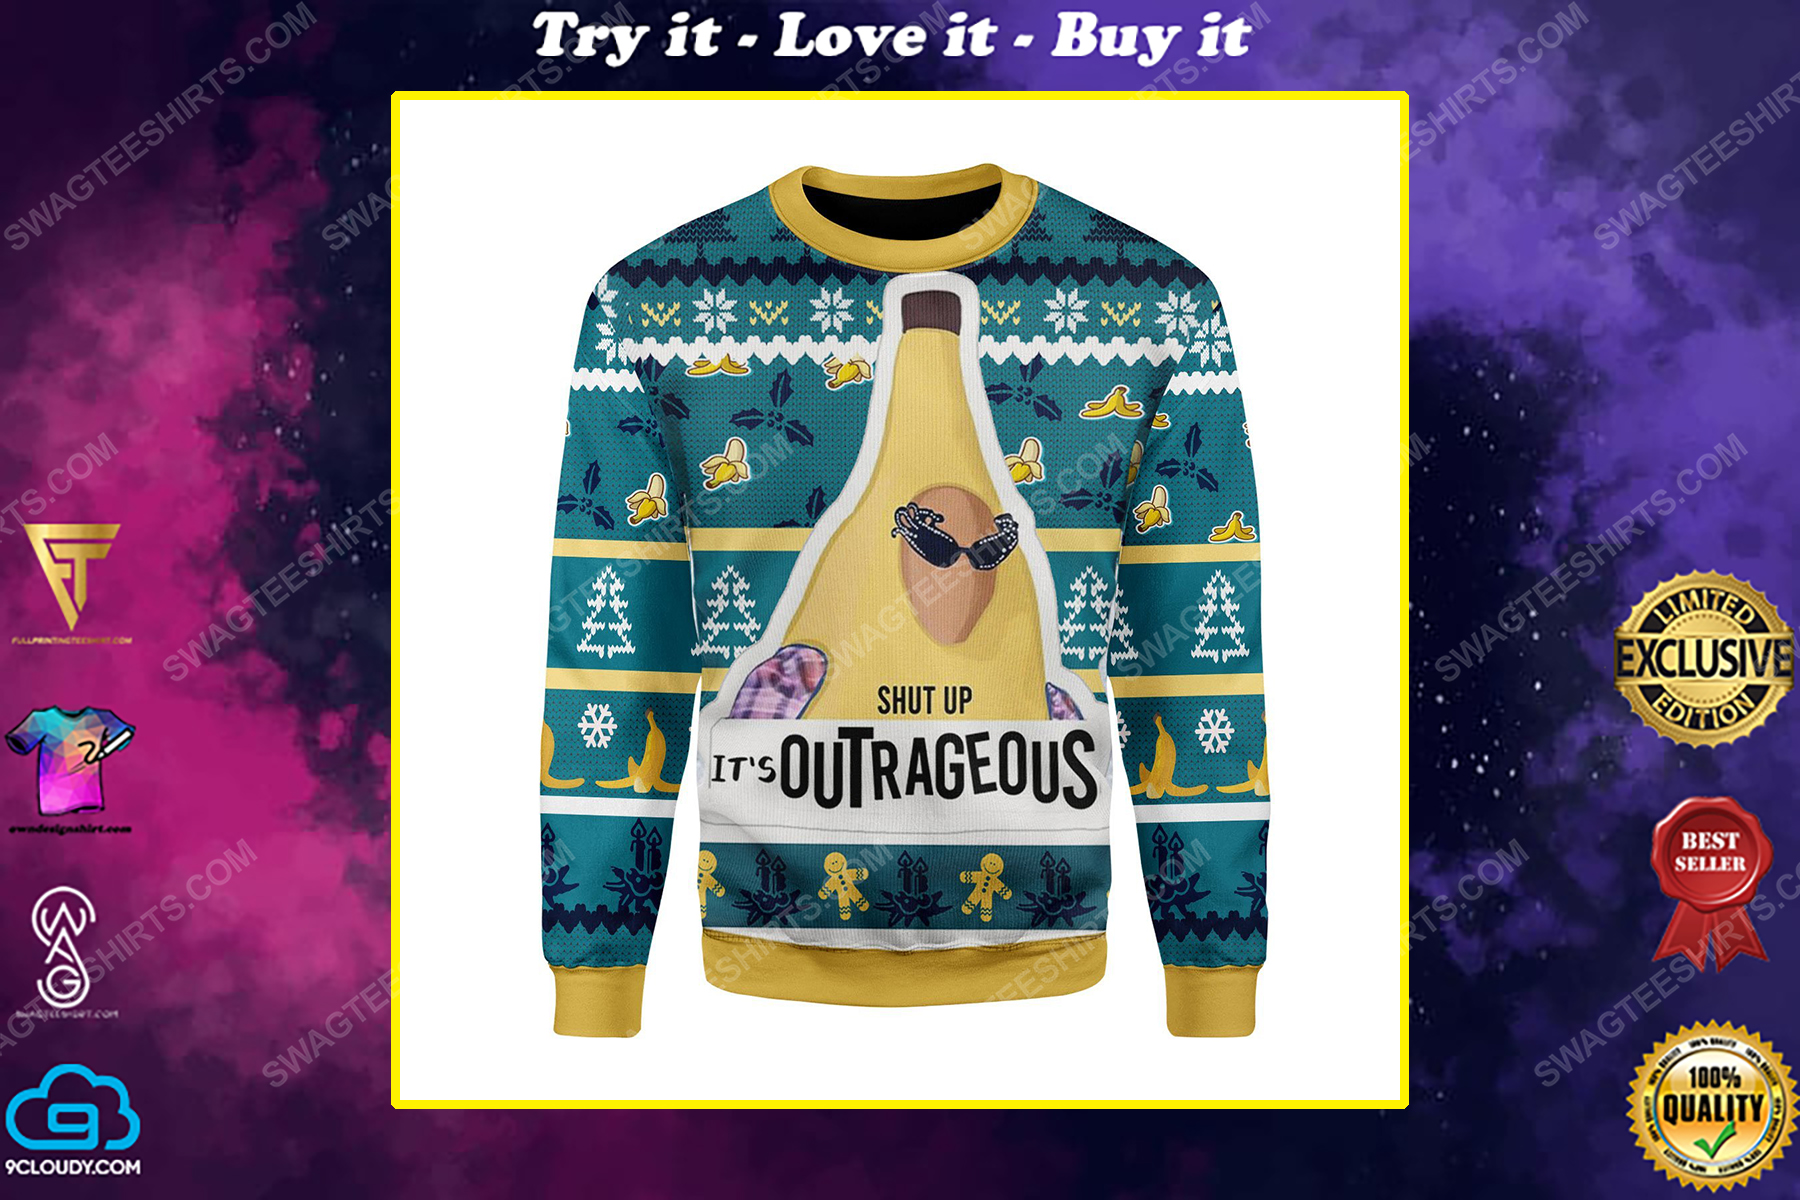 Banana liam payne shut up it's outrageous ugly christmas sweater